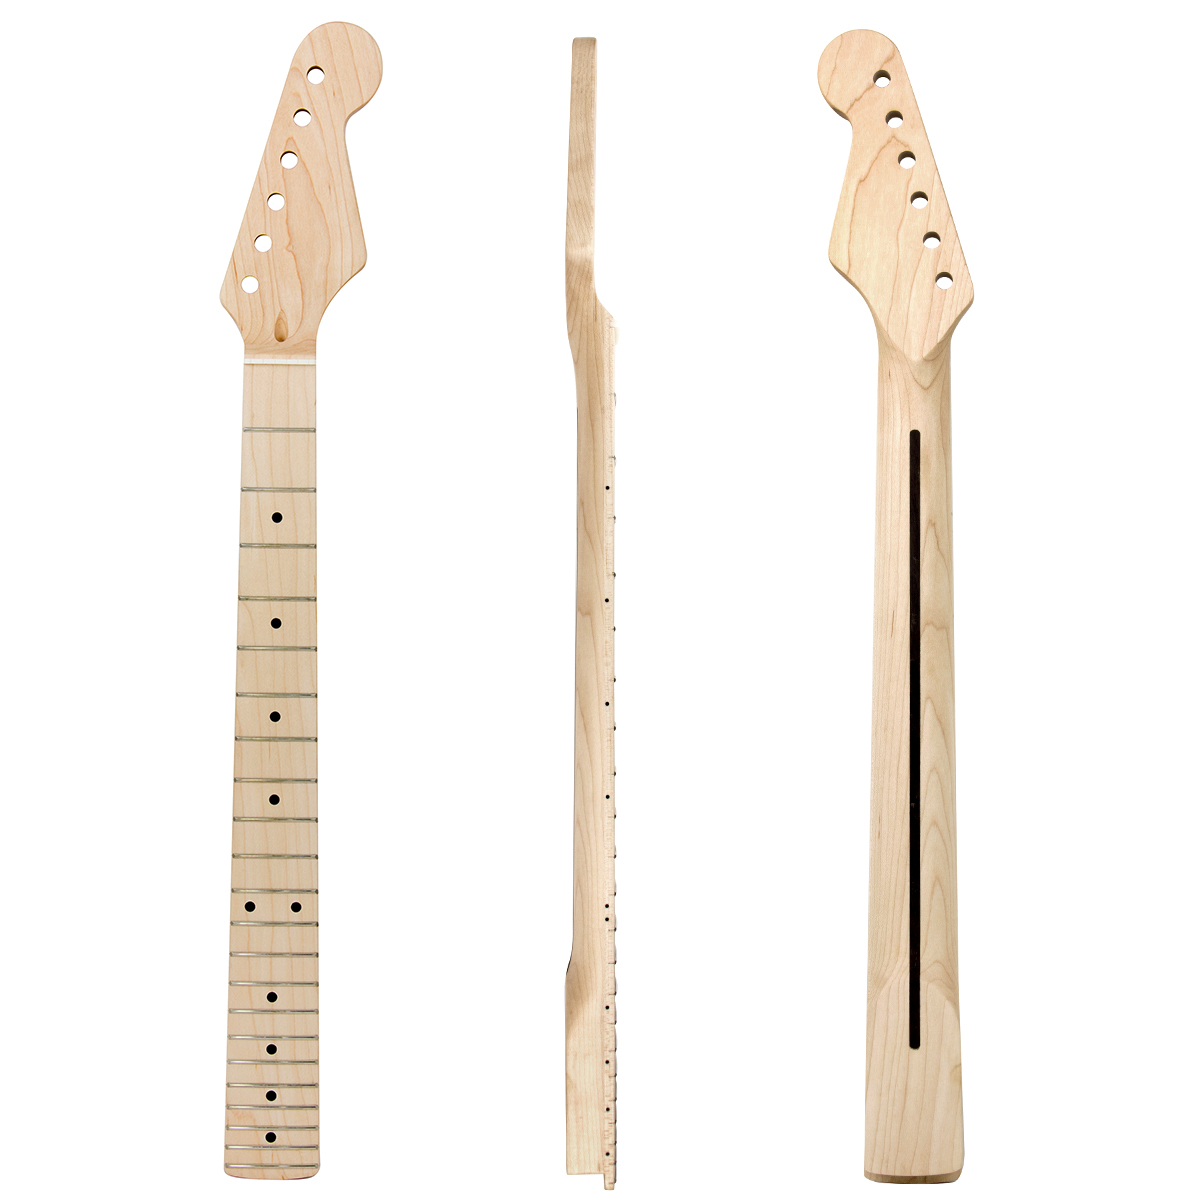 Kmise Electric Guitar Neck for Fender Start Clear Satin Canada Maple 22 Frets Dual Truss Rod Bolt On 10mm Tuner Hole